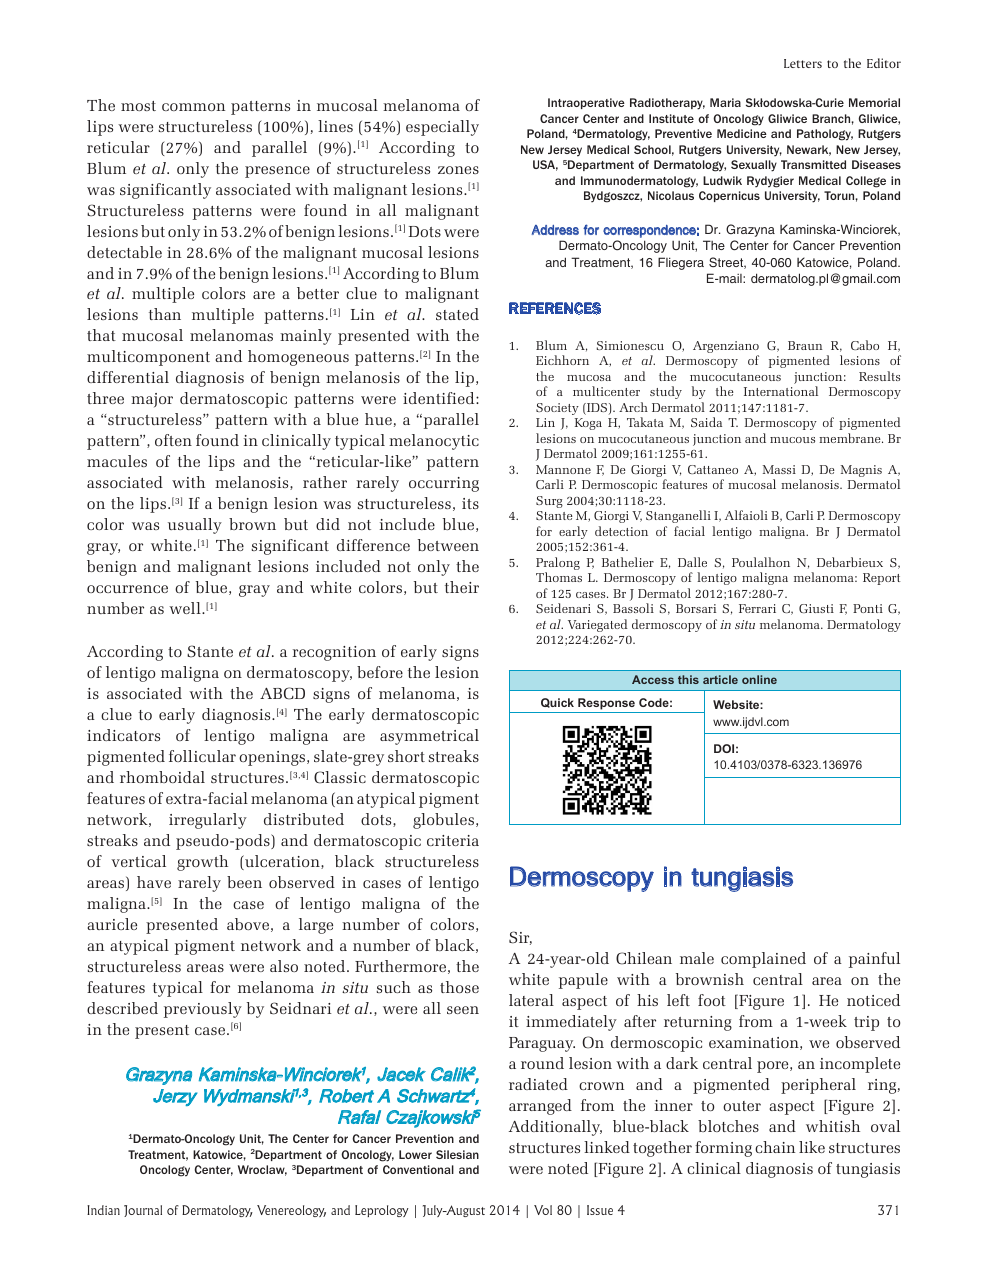 Dermoscopy in tungiasis – topic of research paper in